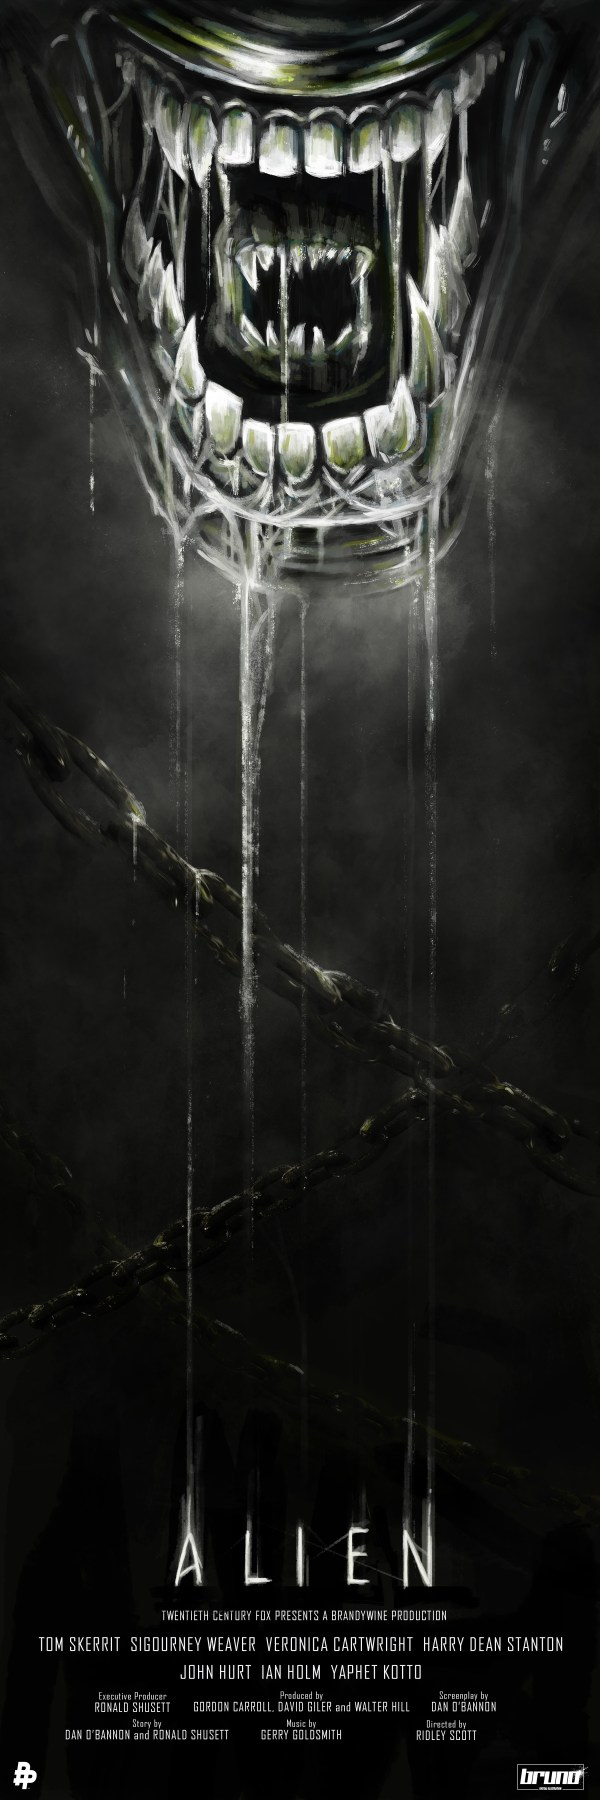 Poster Posse Project #13 Pays Homage 35th Anniversary Of Alien Phase 1